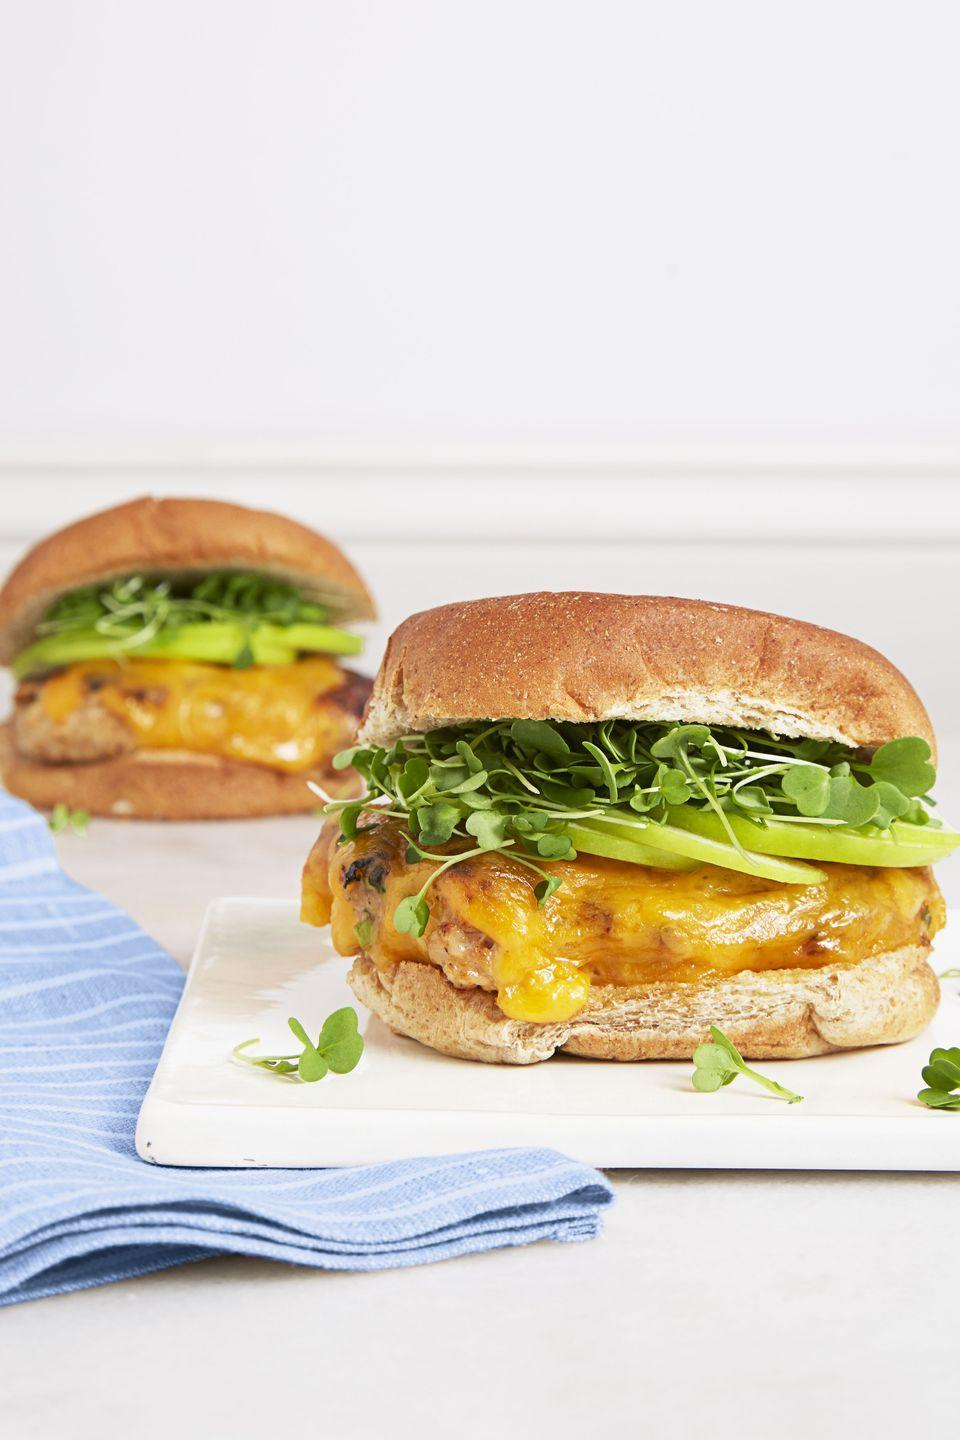 """<p>We packed these chicken patties with smoky barbecue sauce and green onions, then topped 'em with sharp Cheddar, sweet apples and sprouts. Trust us, nobody will miss the beef.</p><p><a href=""""https://www.goodhousekeeping.com/food-recipes/a37552/bbq-chicken-cheddar-burgers-recipe/"""" rel=""""nofollow noopener"""" target=""""_blank"""" data-ylk=""""slk:Get the recipe for BBQ Chicken & Cheddar Burgers »"""" class=""""link rapid-noclick-resp""""><em>Get the recipe for BBQ Chicken & Cheddar Burgers »</em></a></p>"""